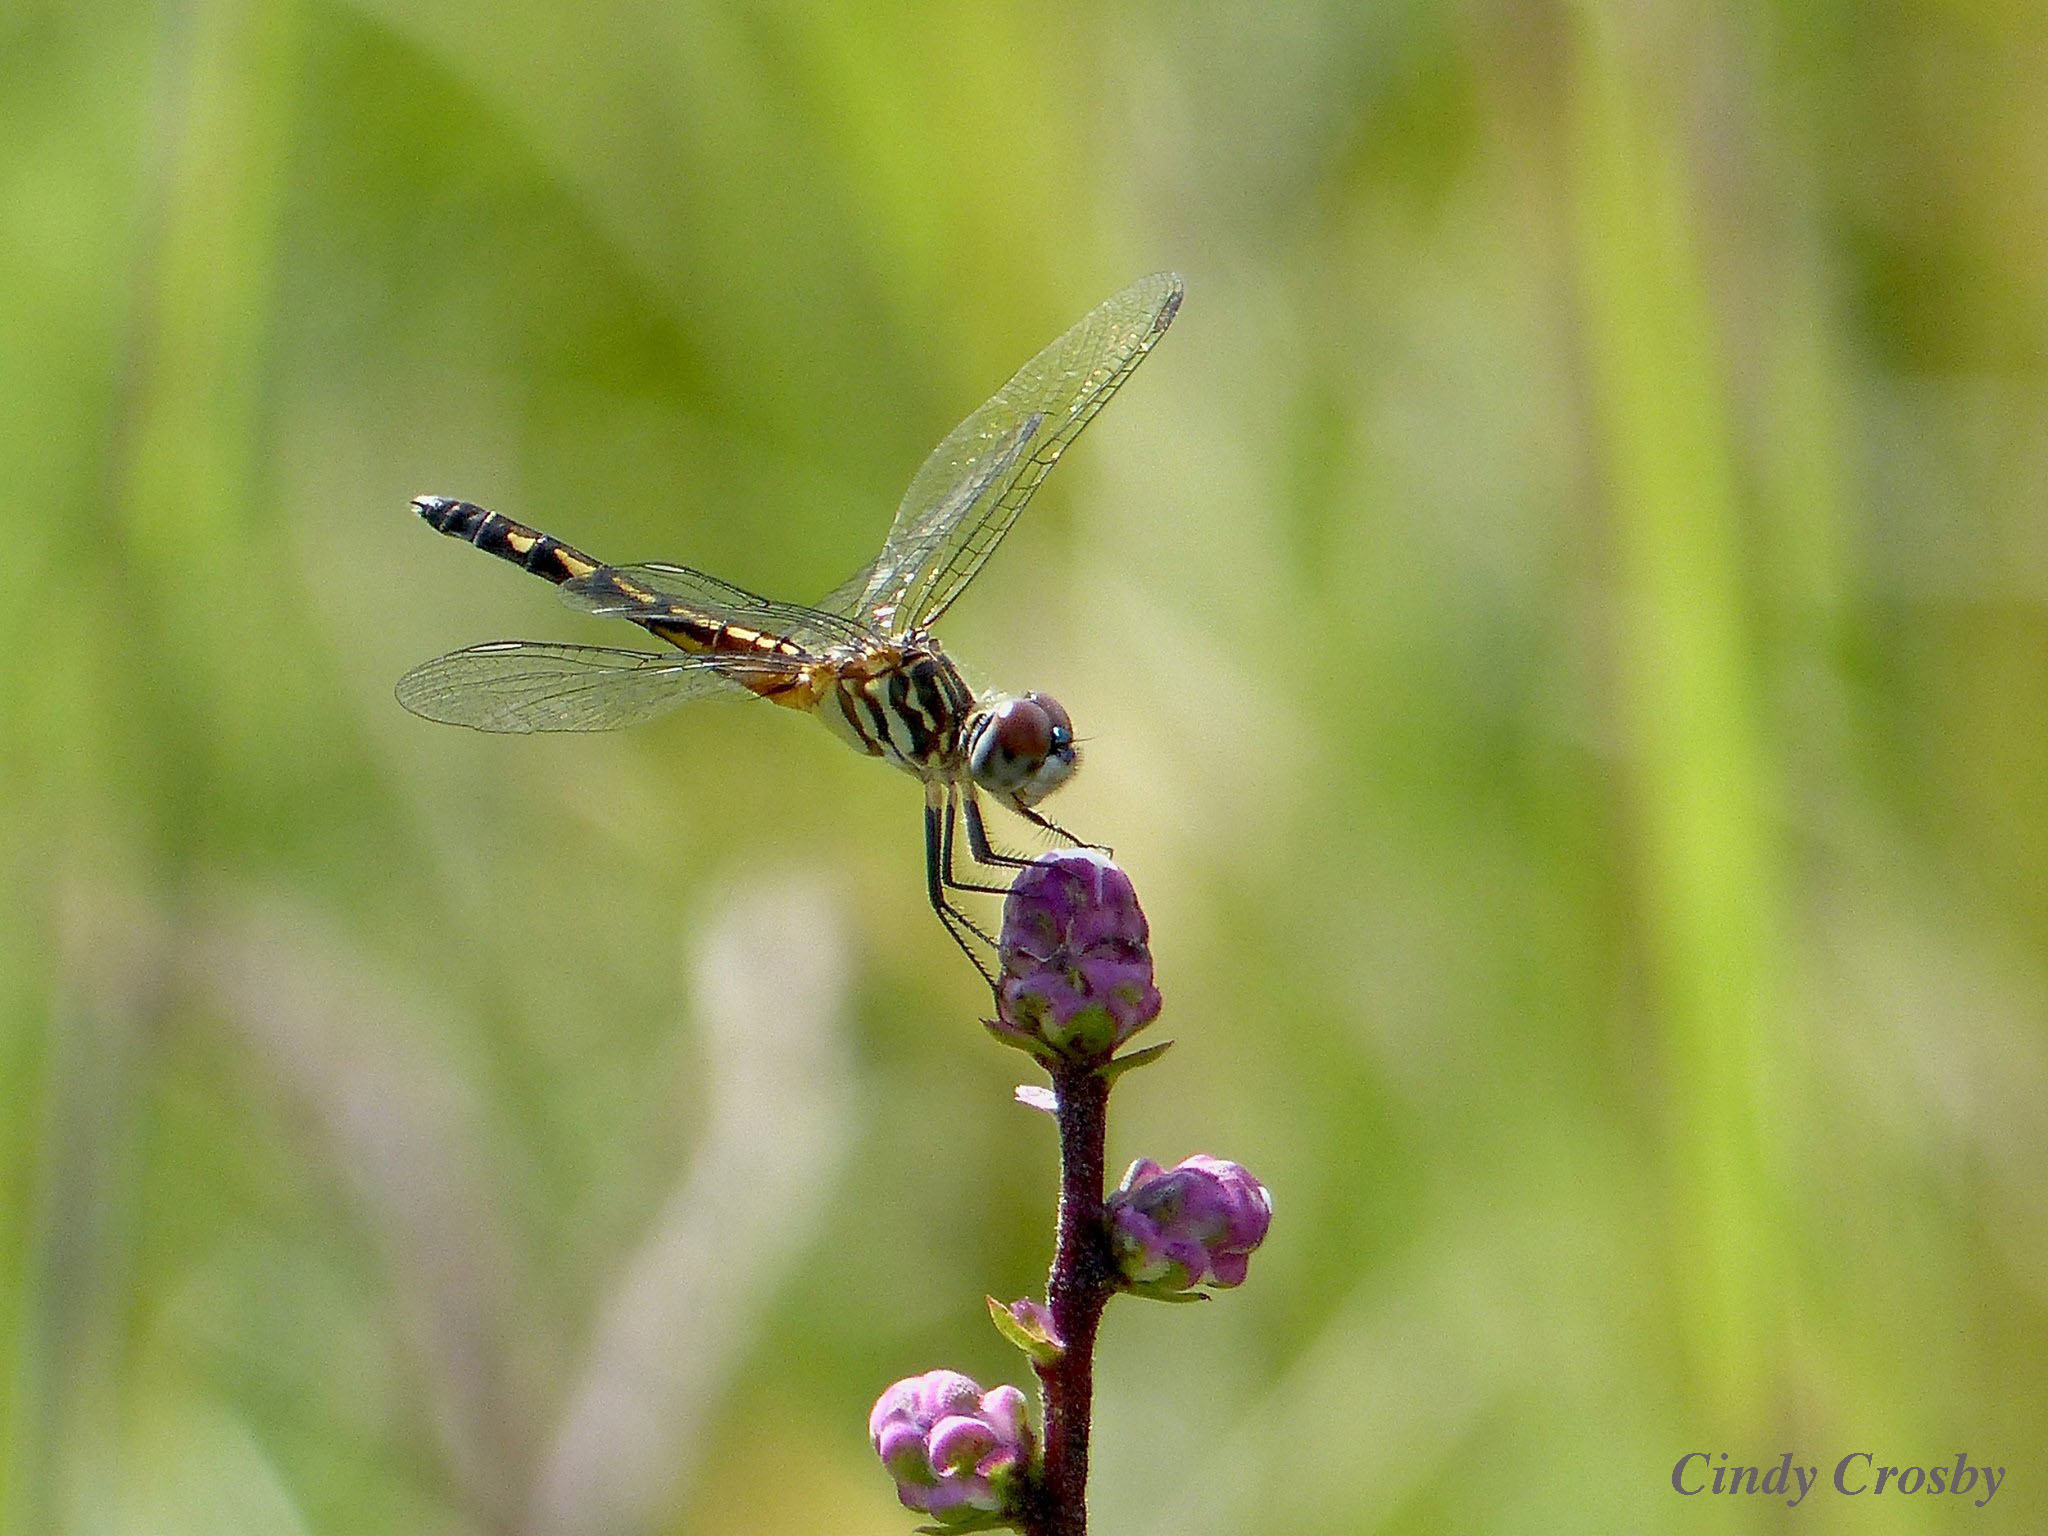 Female Blue Dasher Belmont Prairie WM8716.jpg